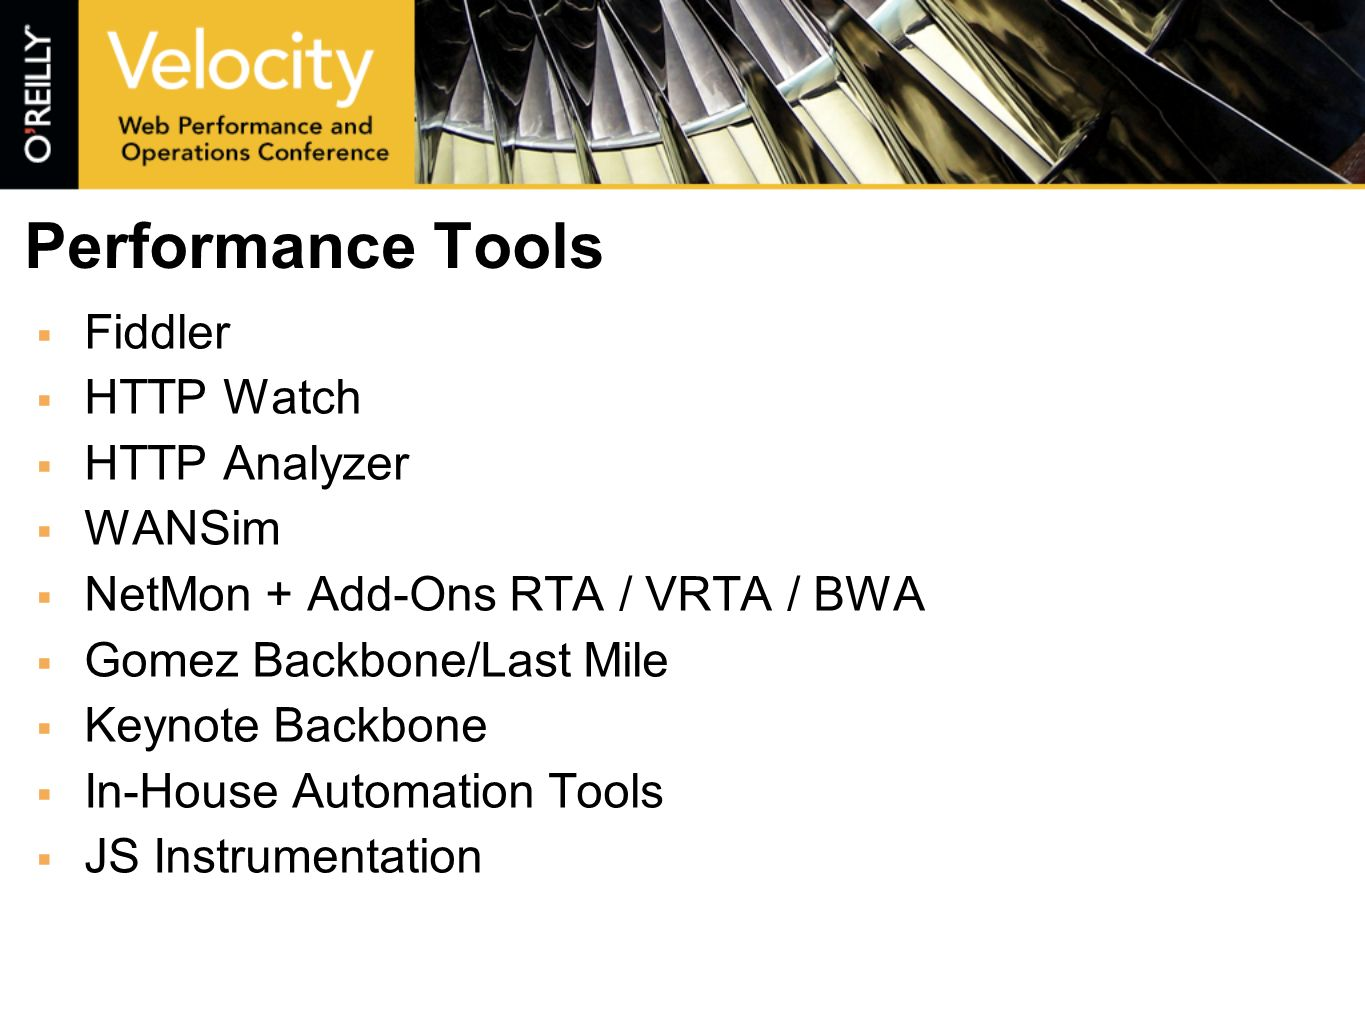 Performance Tools Fiddler HTTP Watch HTTP Analyzer WANSim NetMon + Add-Ons RTA / VRTA / BWA Gomez Backbone/Last Mile Keynote Backbone In-House Automation Tools JS Instrumentation